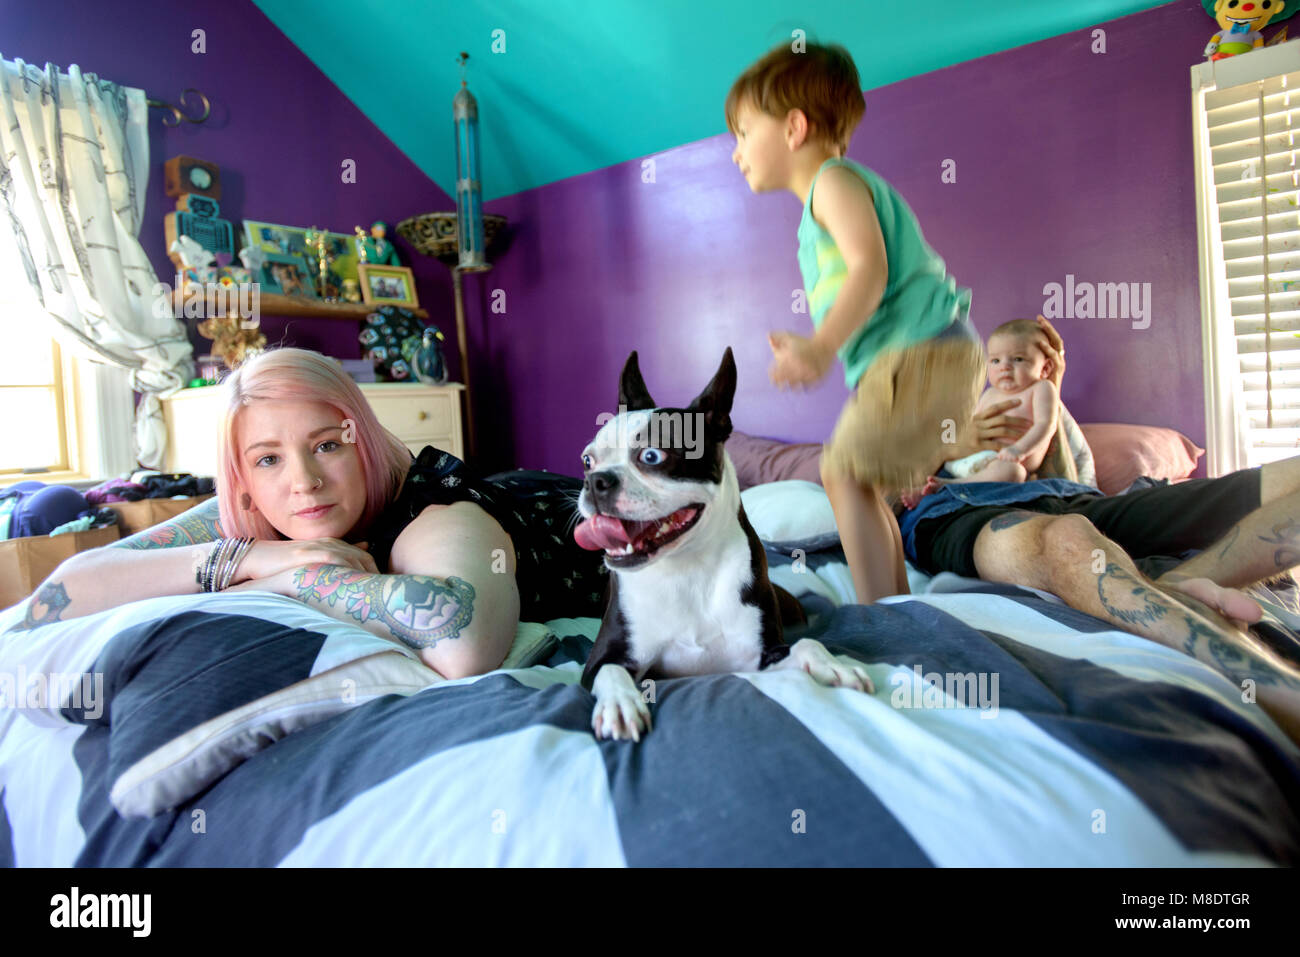 Family and pet dog on bed in bedroom - Stock Image